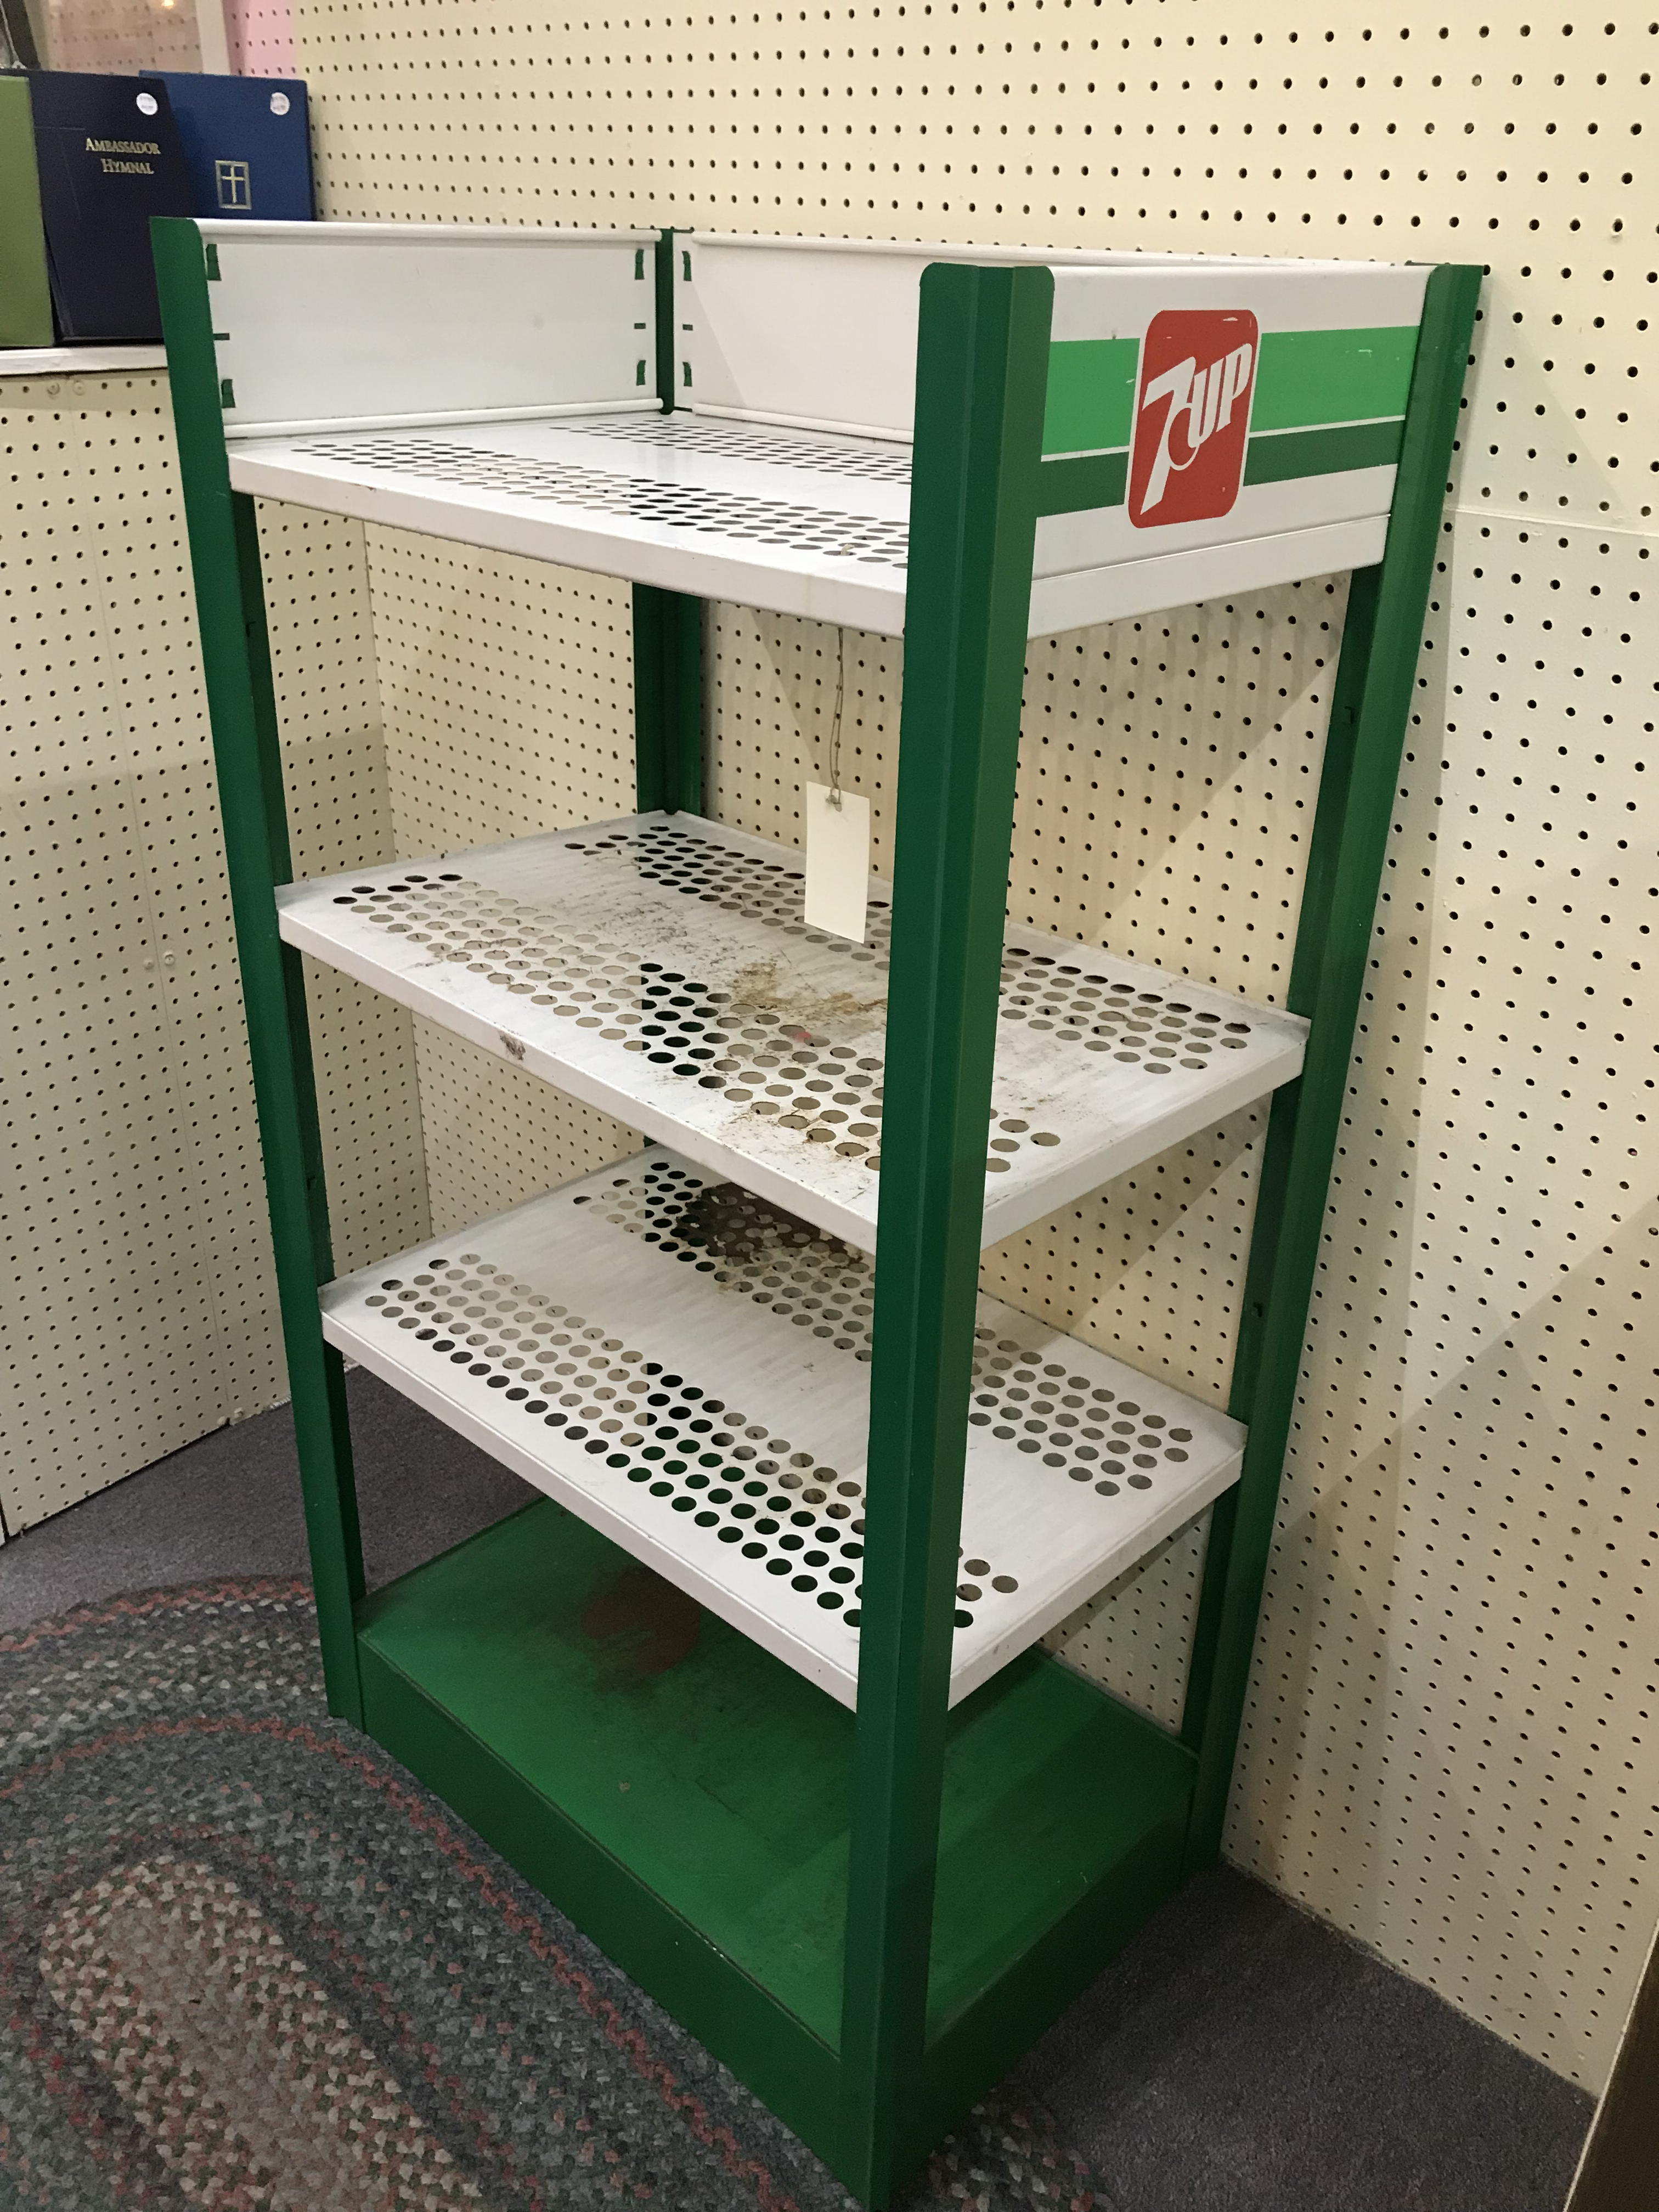 Are You Looking For An Interesting Shelving Unit Perhaps A New